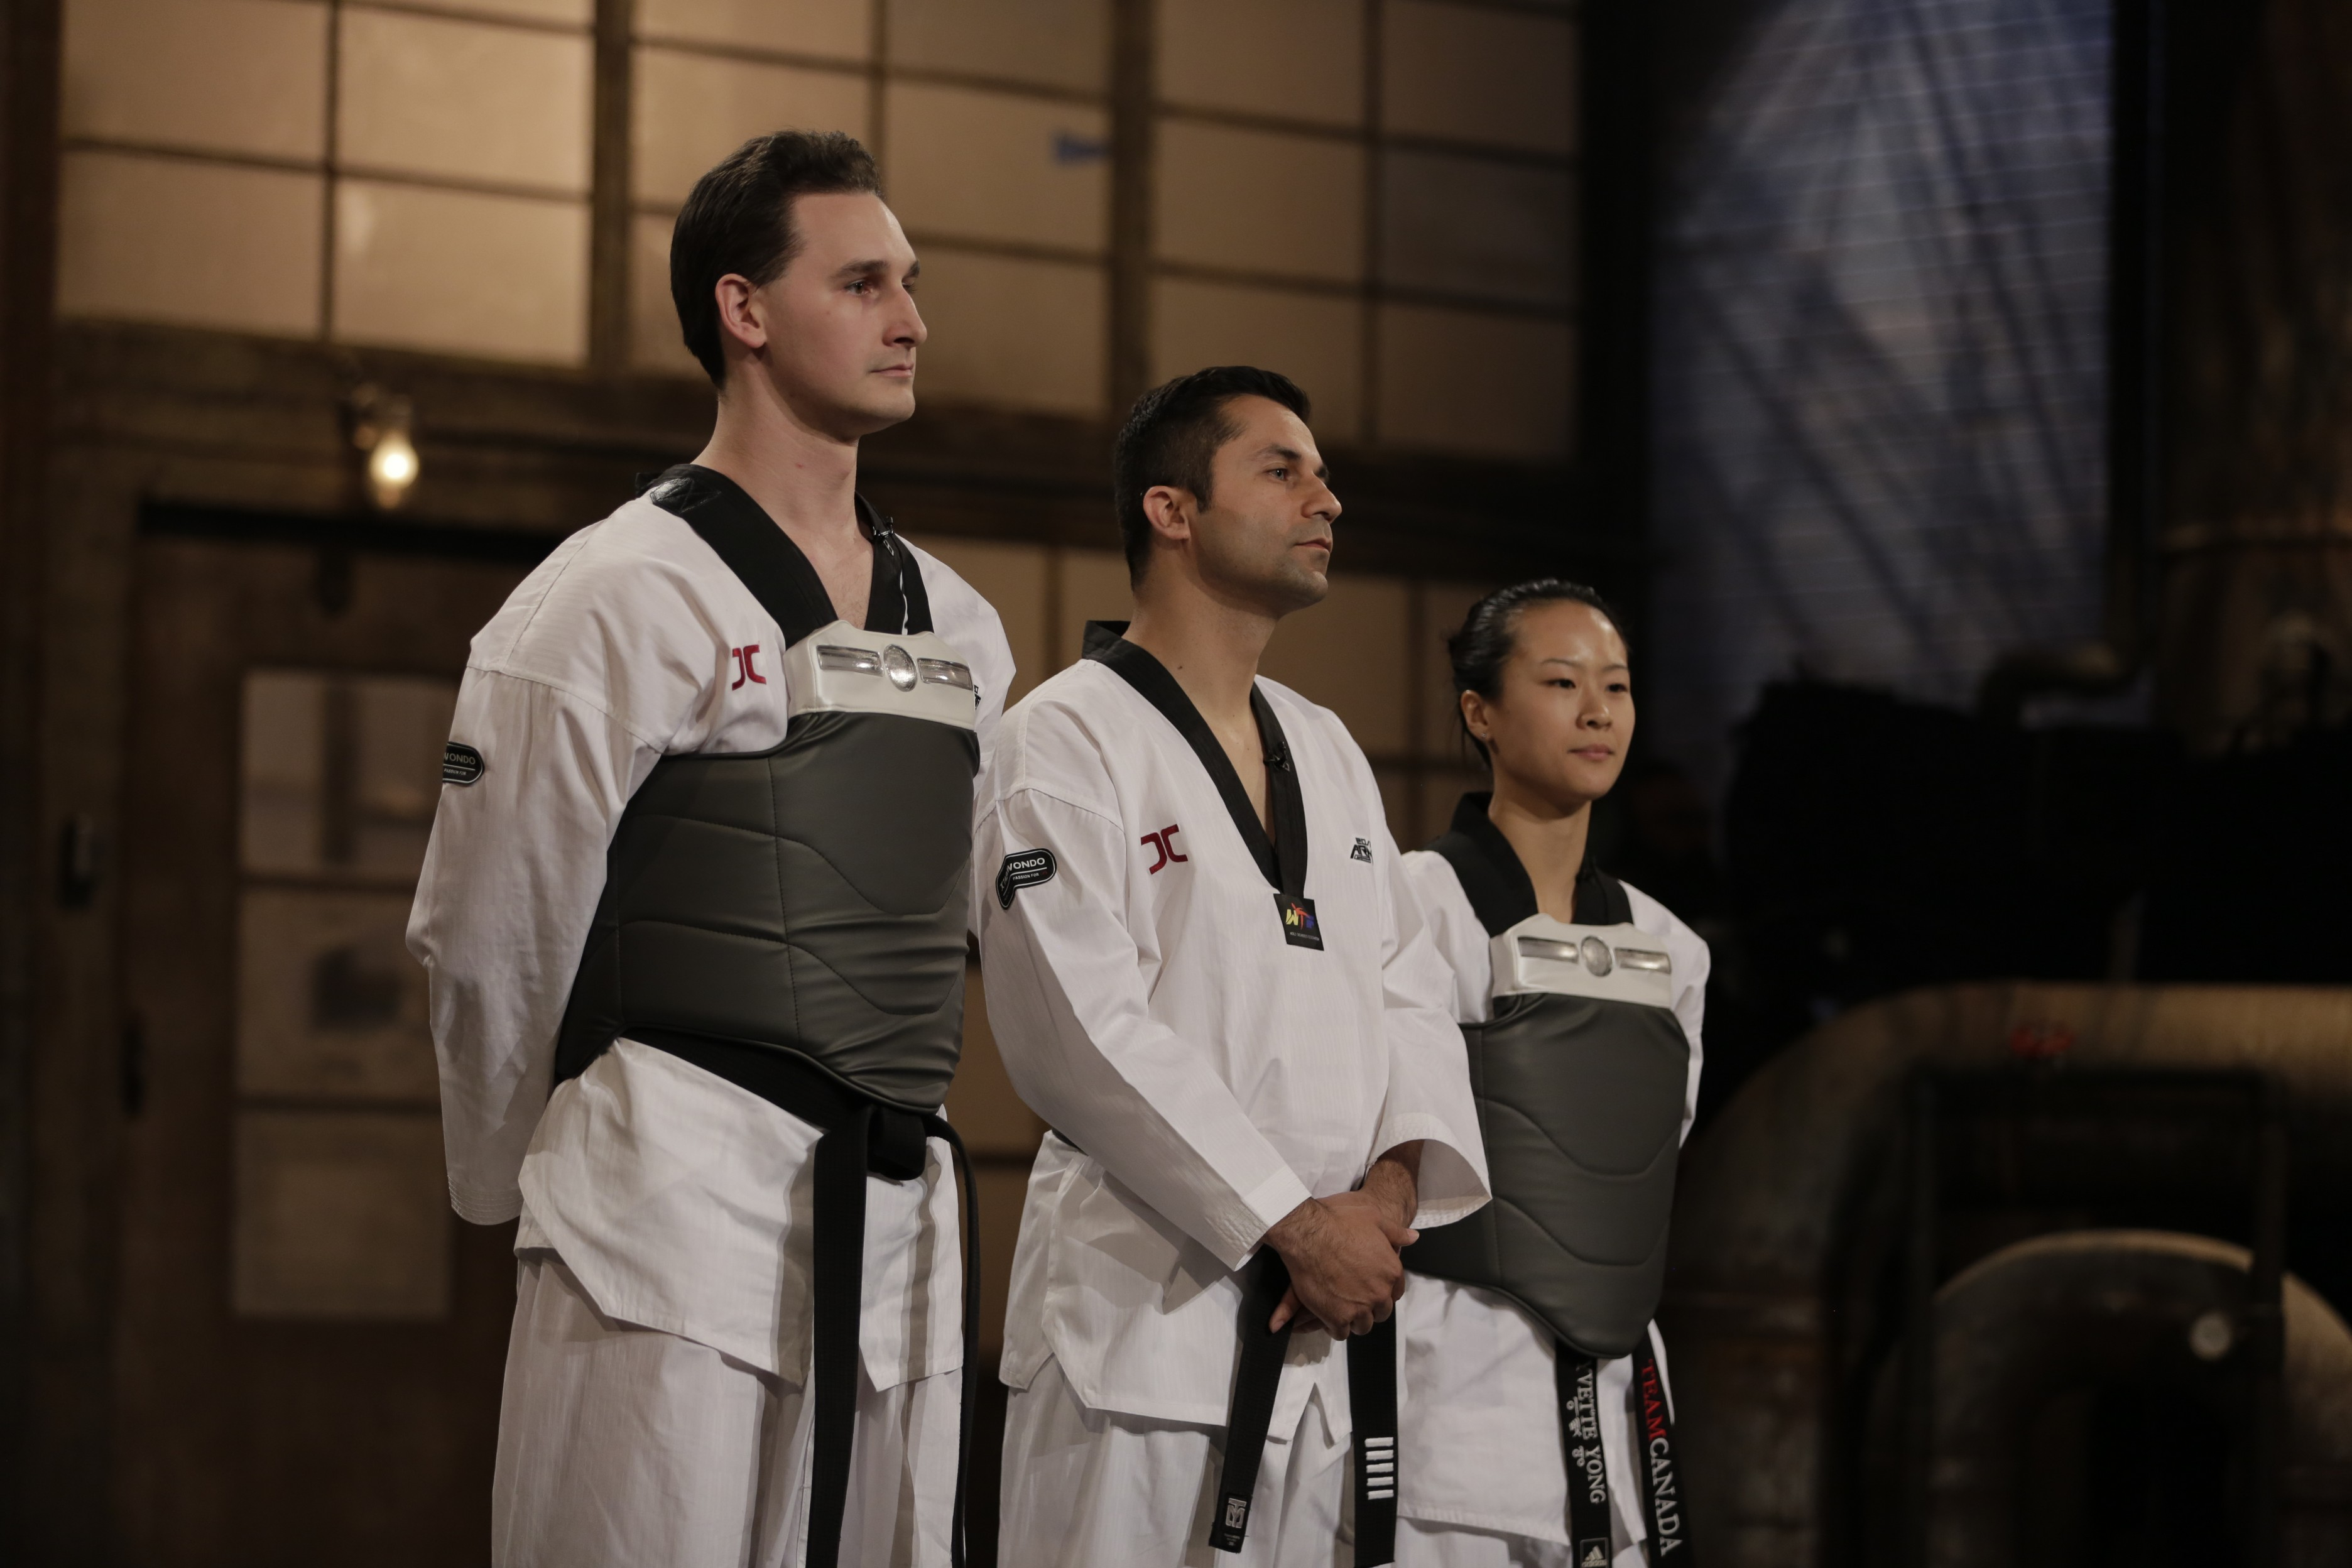 Check us out on Dragons Den!